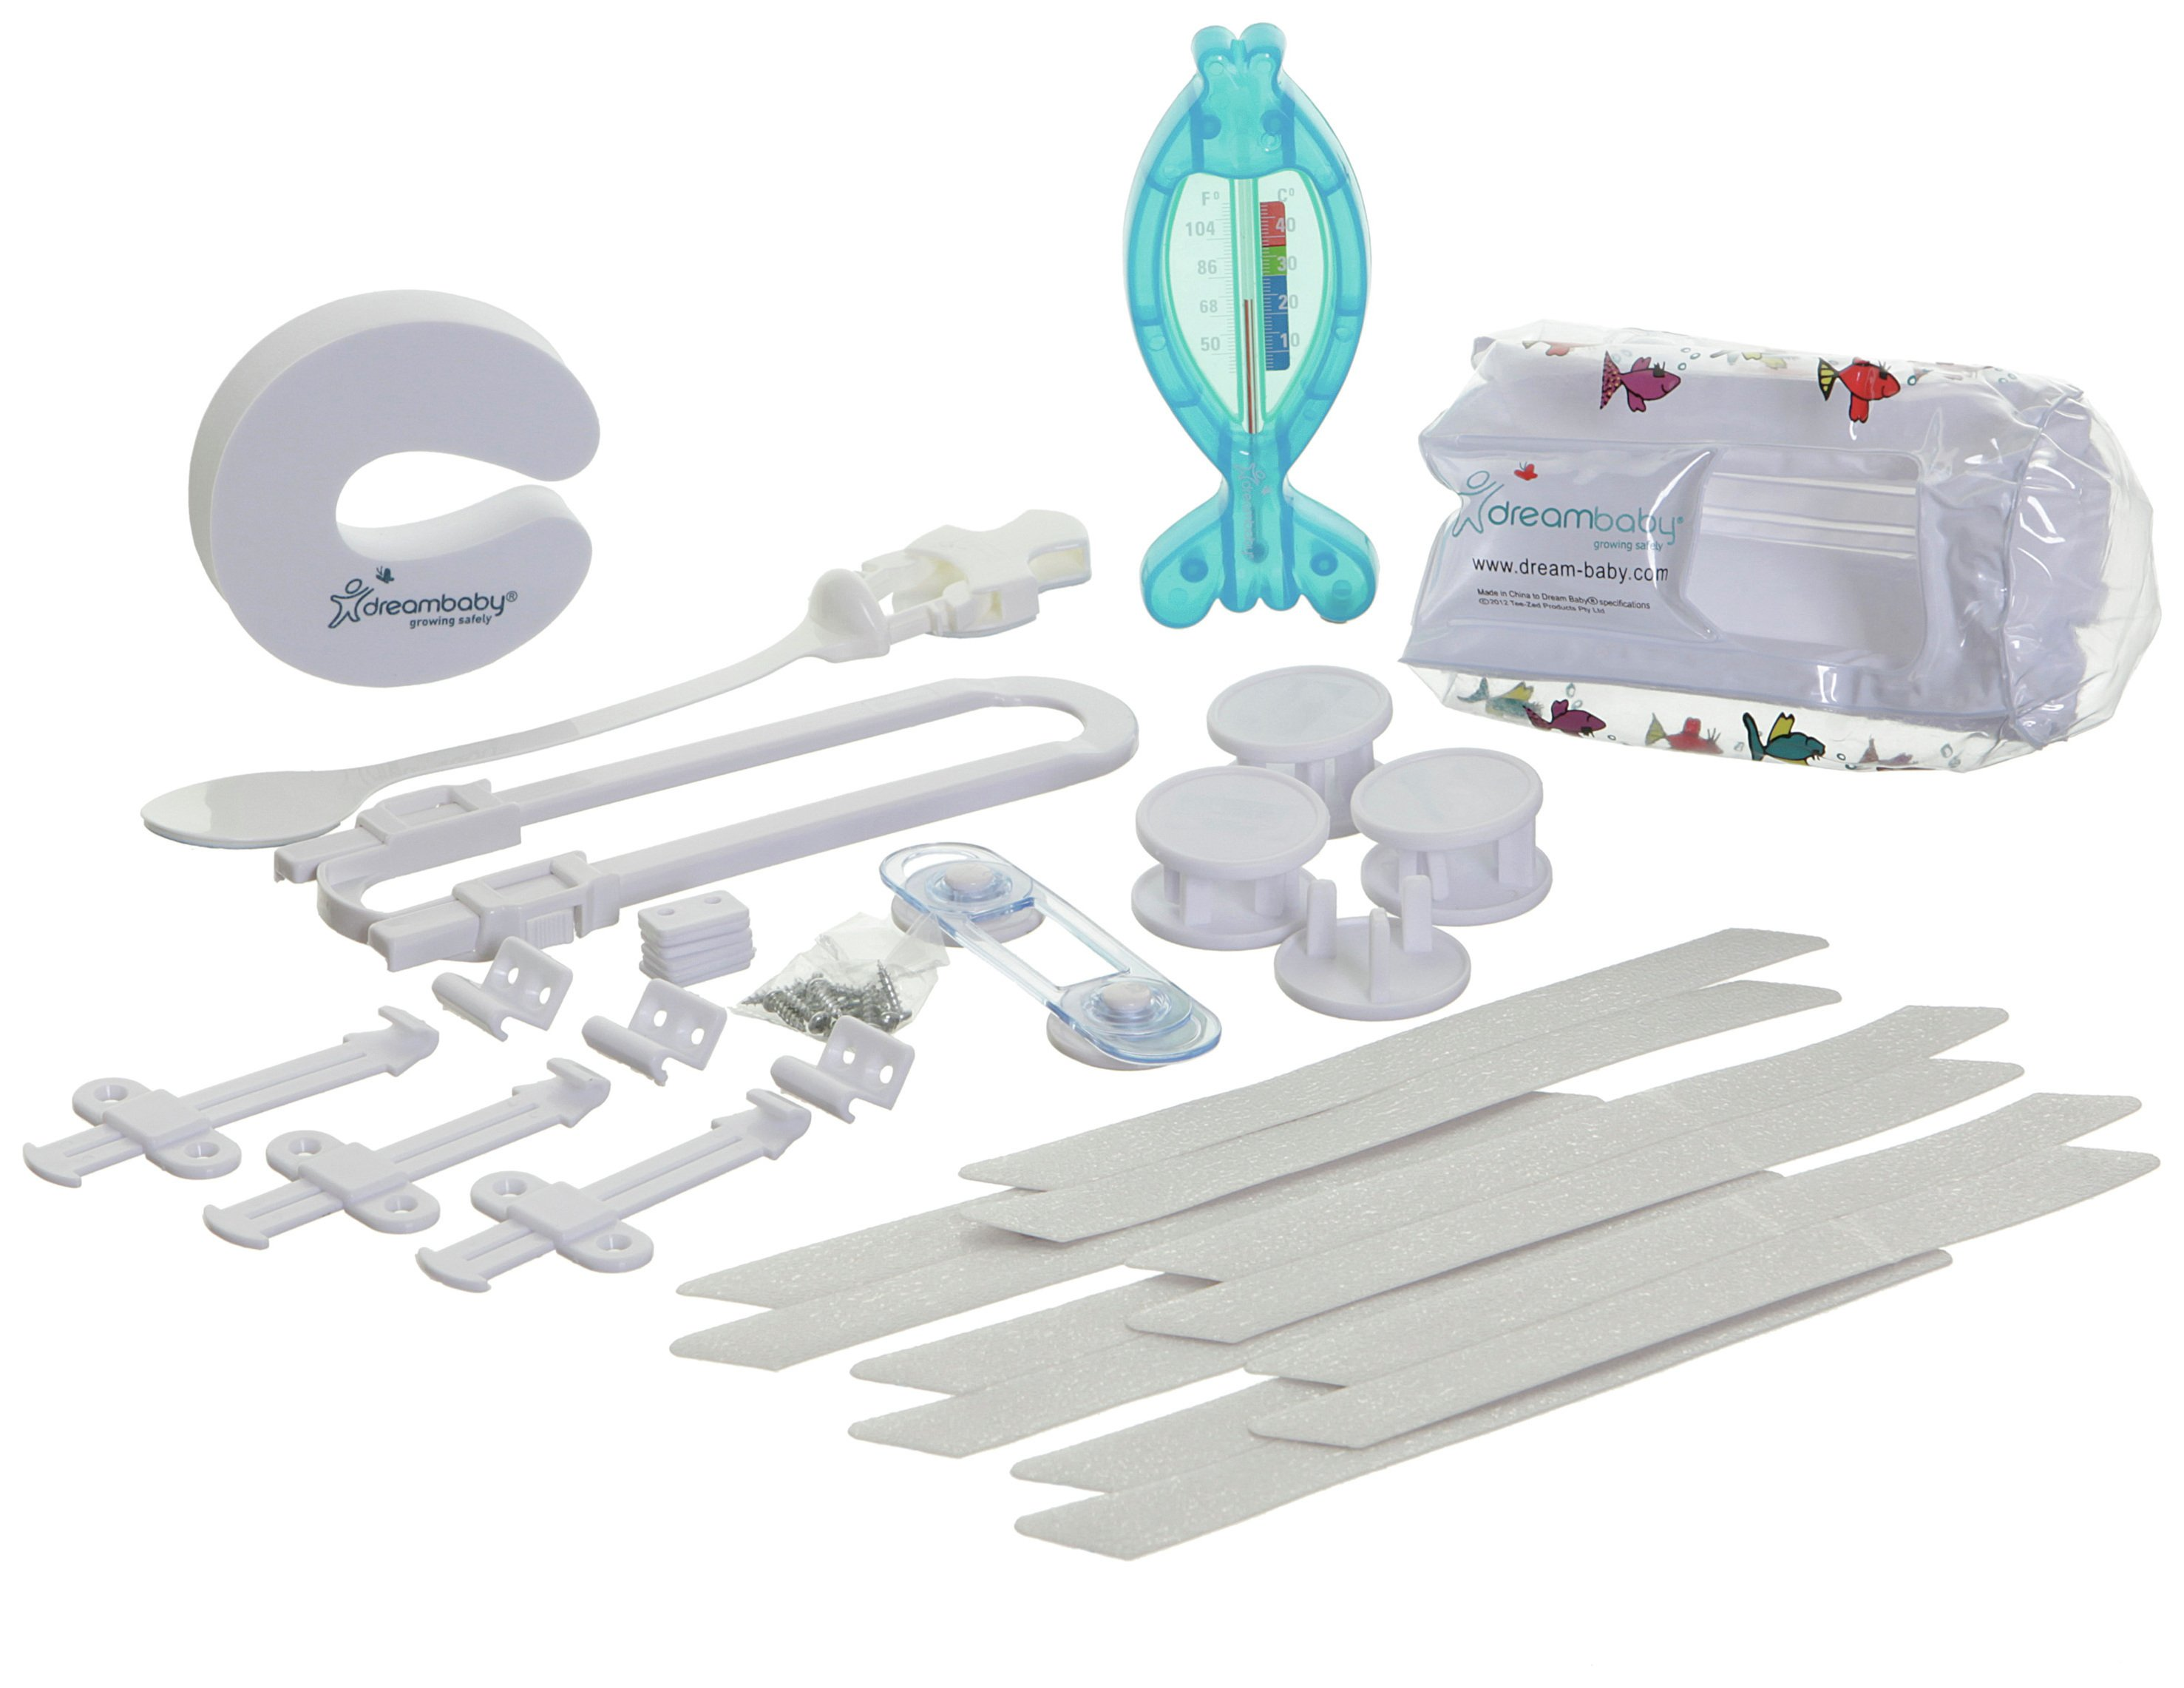 Dreambaby - Bathroom Boxed Safety Kit - 28 Pieces